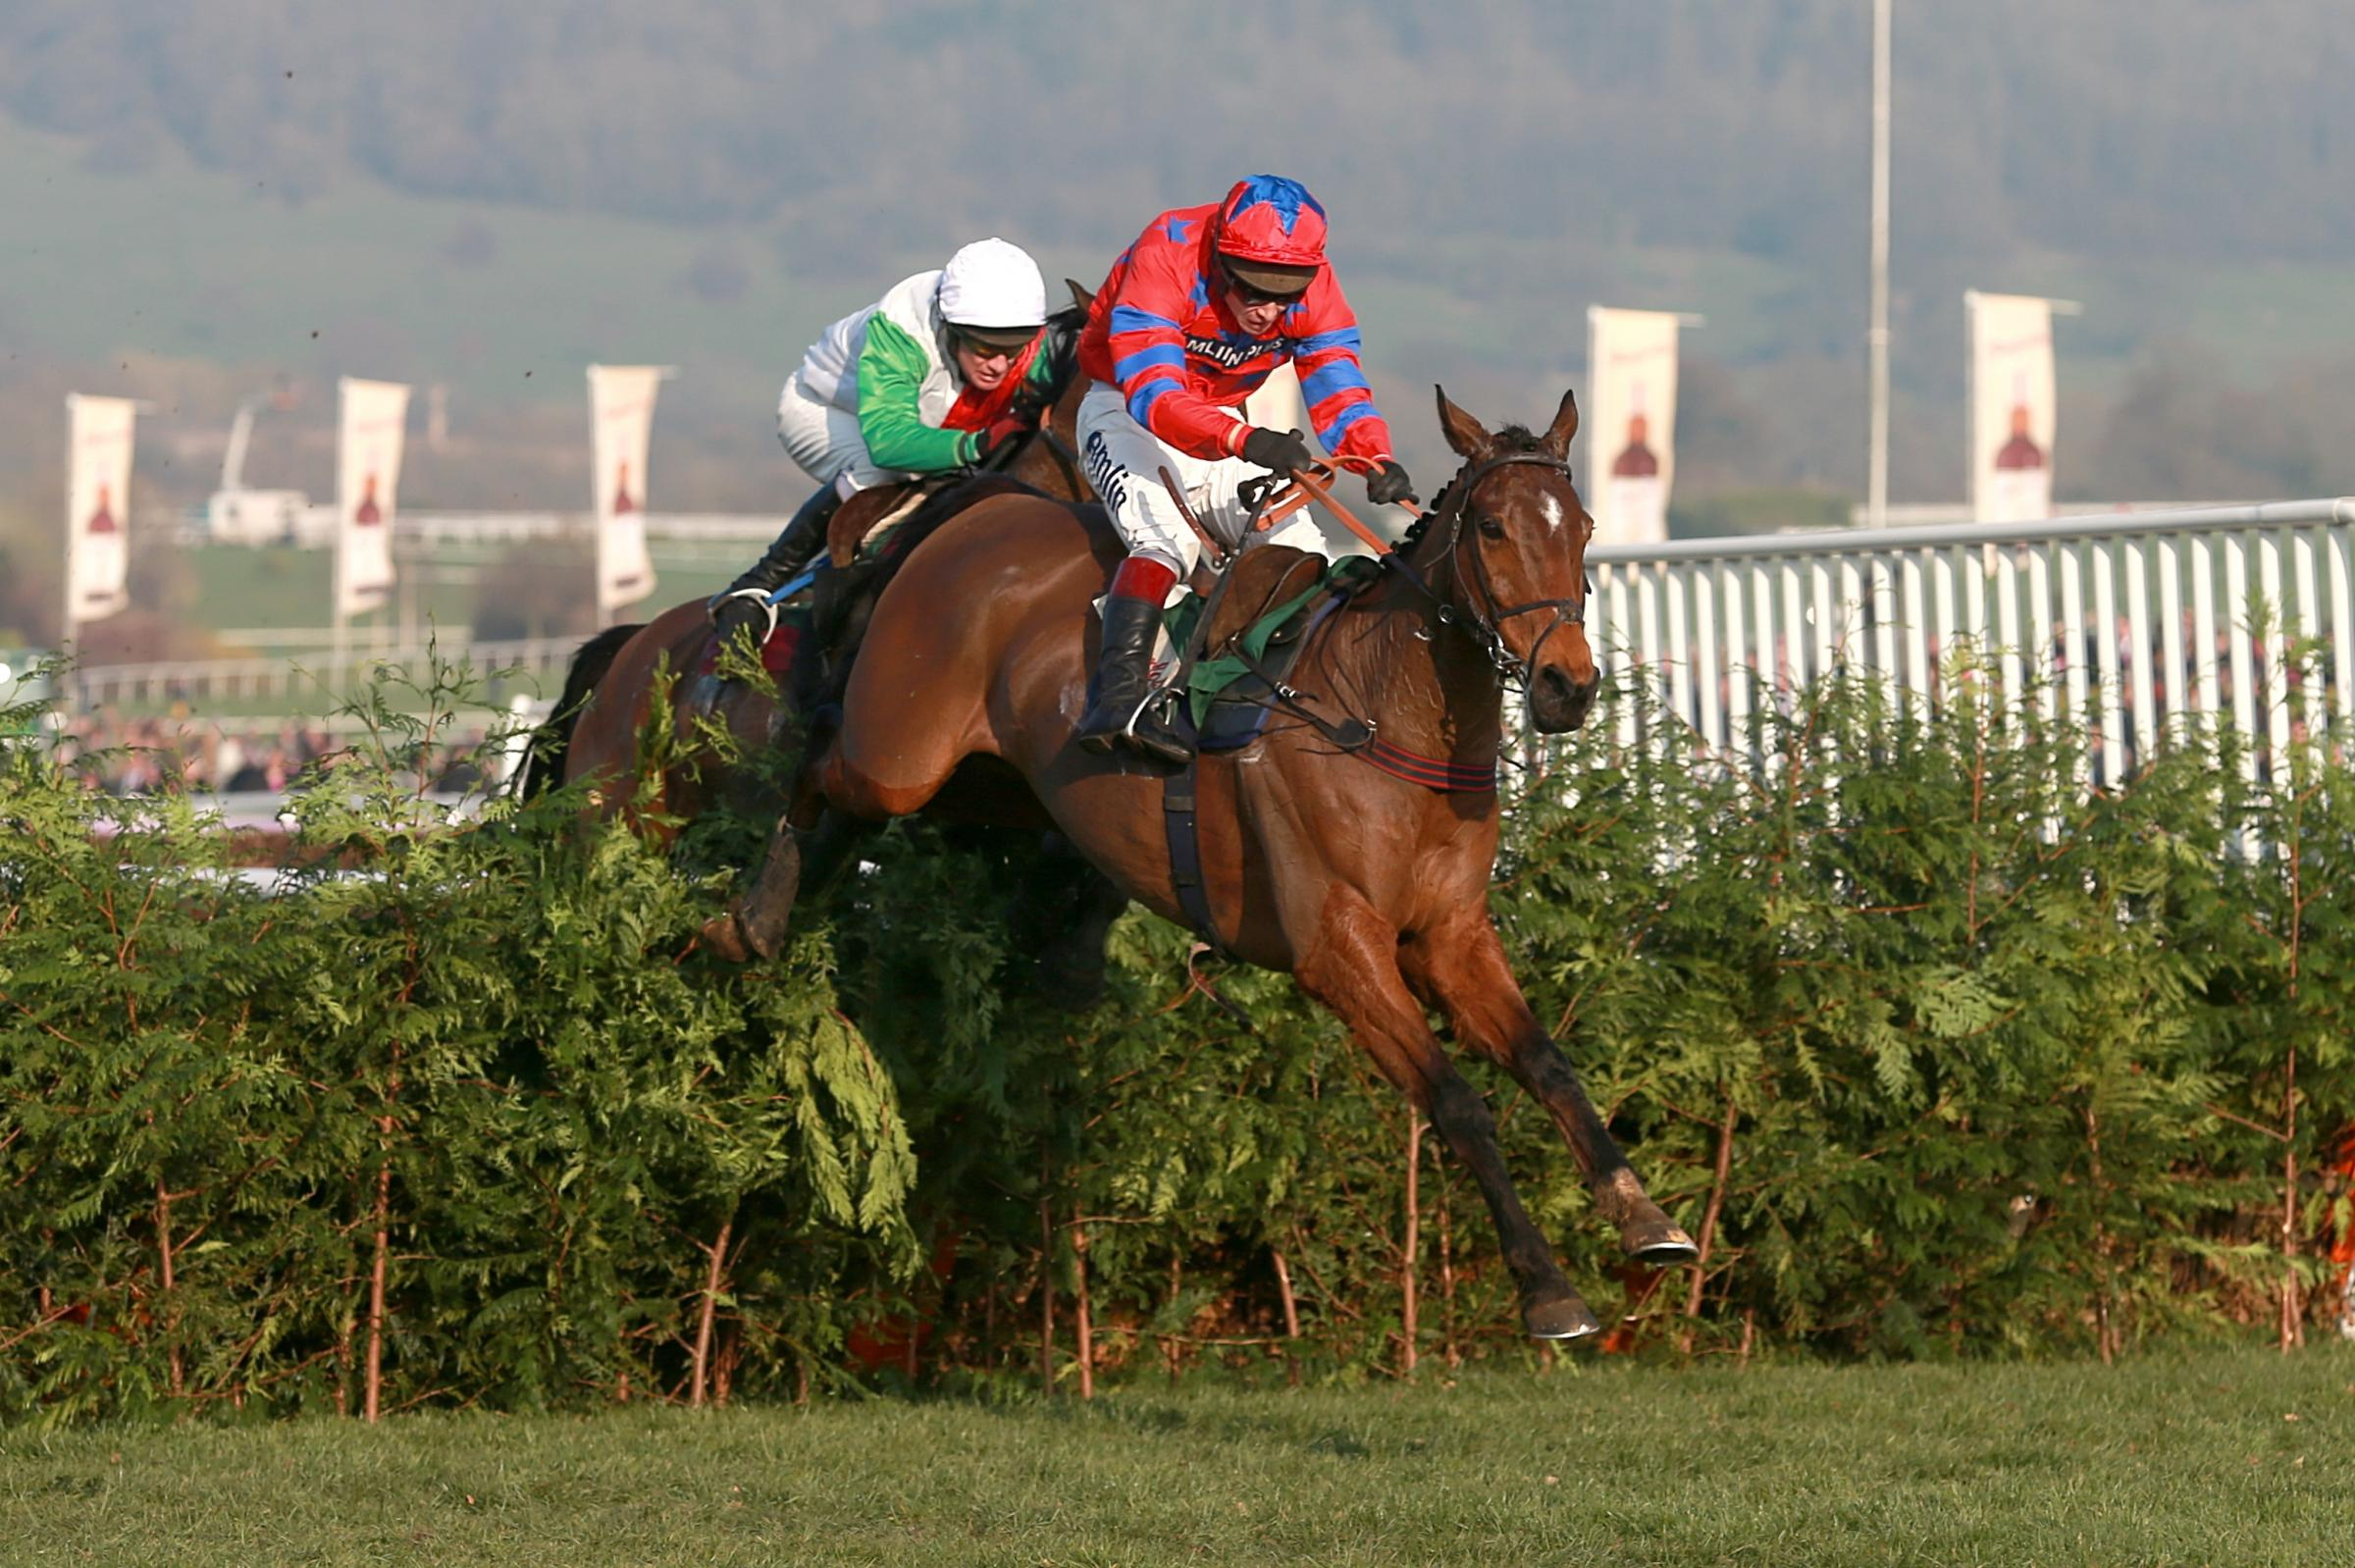 Balthazar King is fancied to win the Grand National at Aintree today